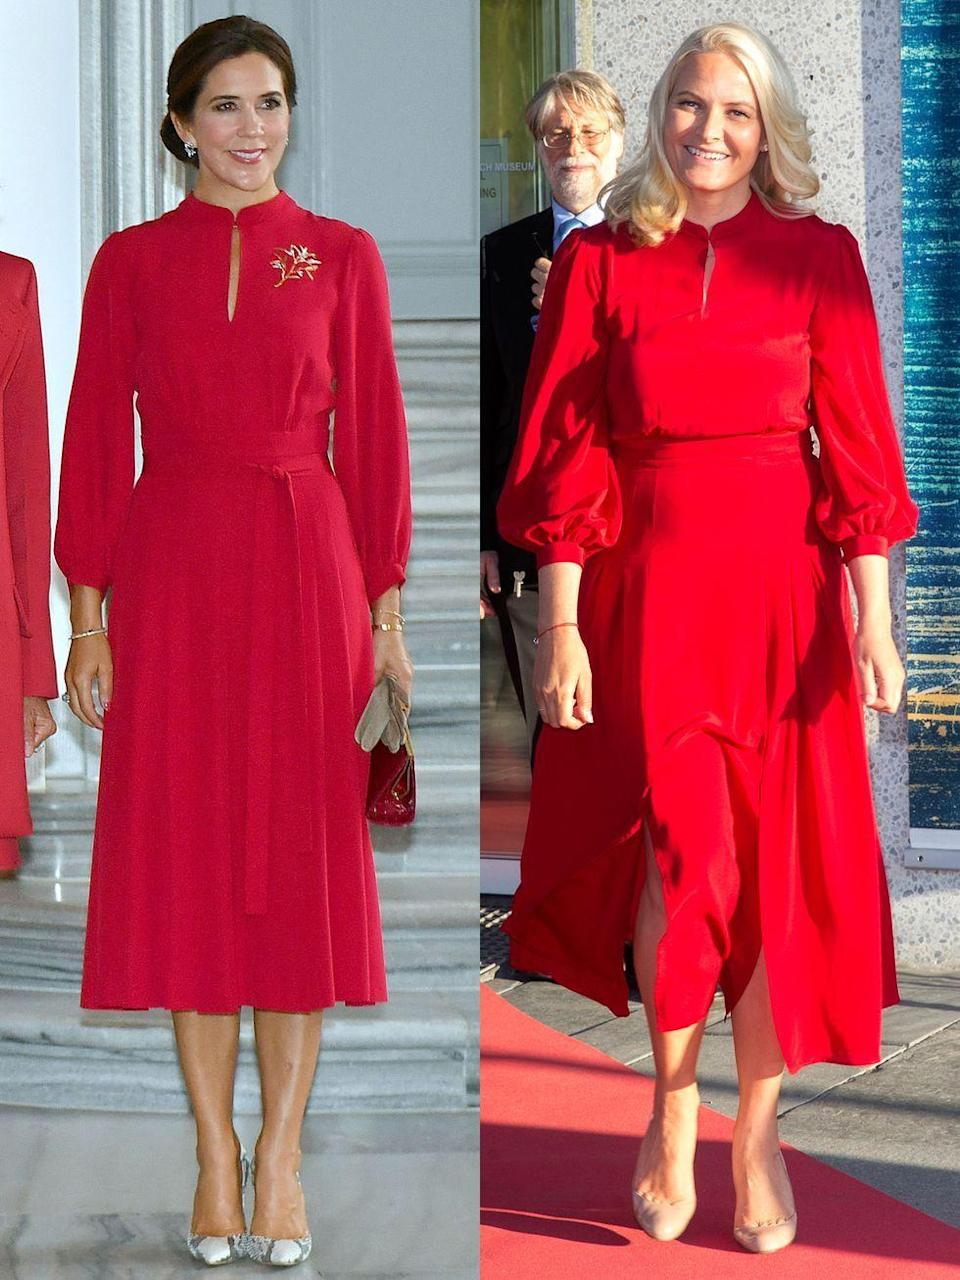 """<p>At right, Crown Princess Mette-Marit wore a dress by Raquel Diniz to the opening of the exhibition """"Towards the Forest—Knausgaard on Munch"""" in Oslo, Norway in May, 2017. On left, Crown Princess Mary of Denmark wore the same dress to the Royal Danish Academy of Fine Arts in Copenhagen in August 28, 2018.</p>"""